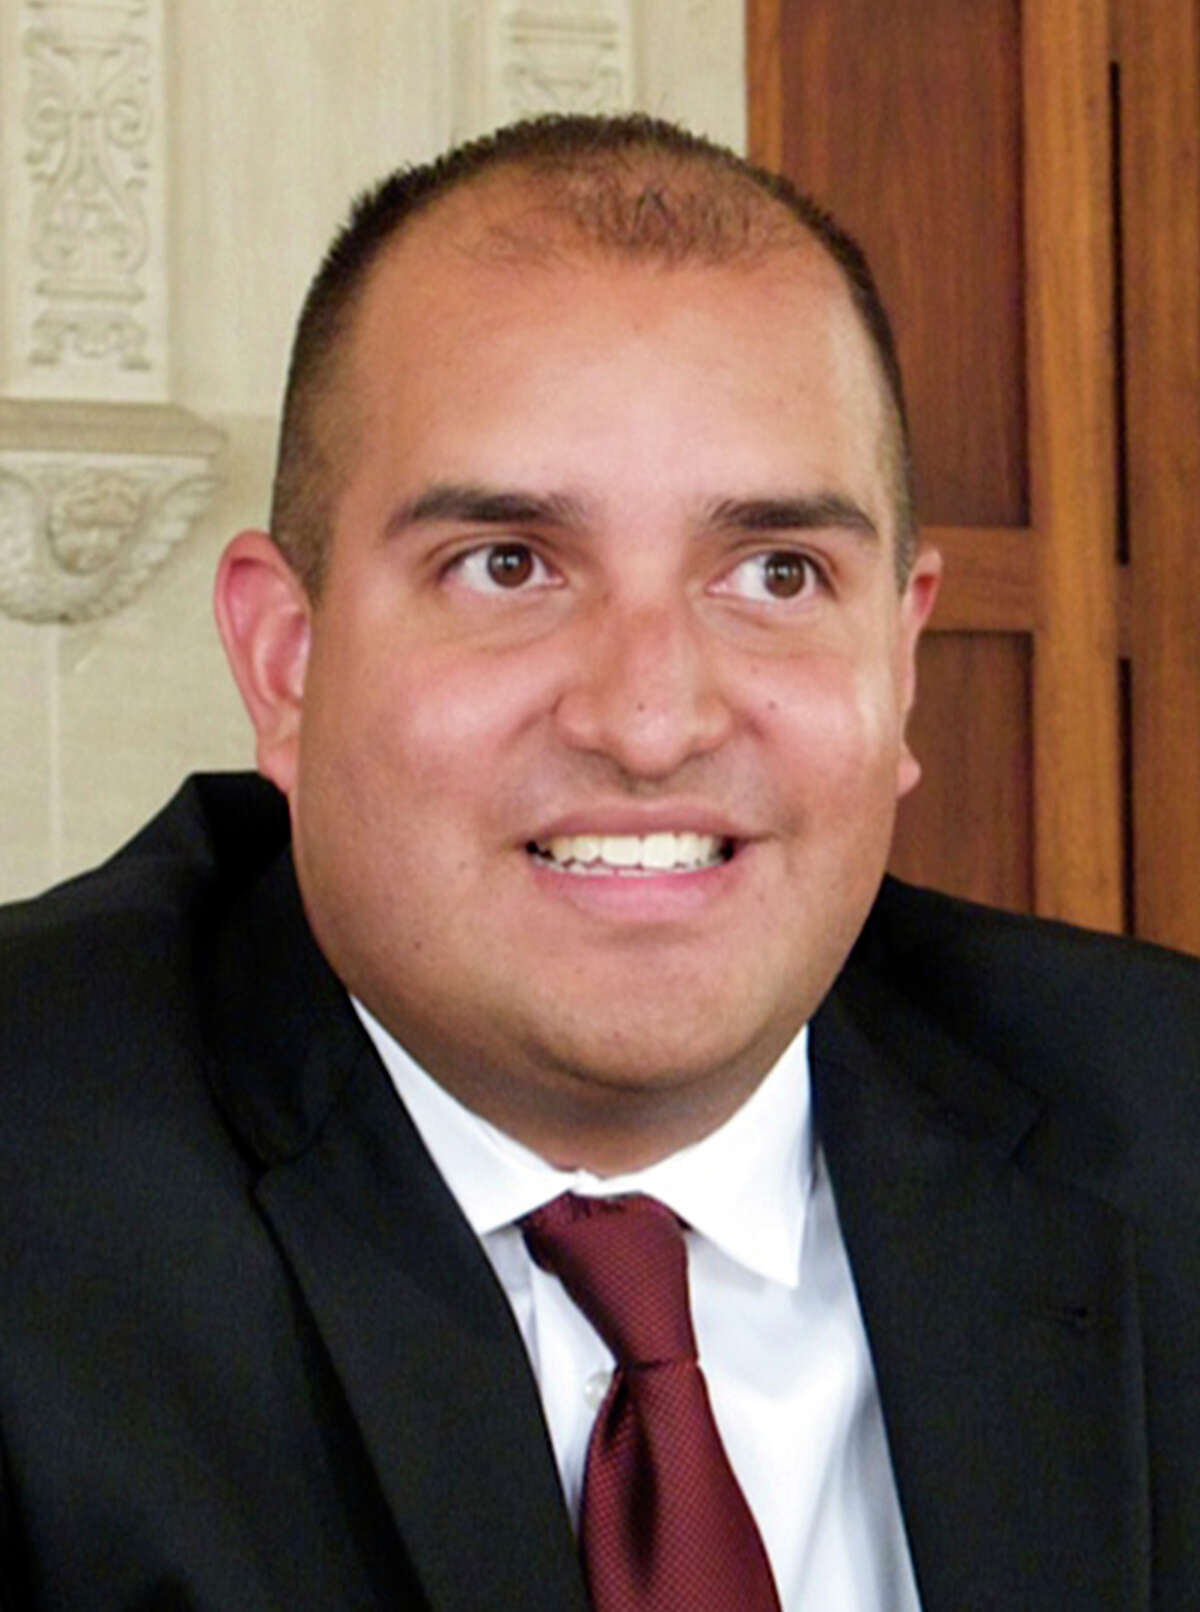 Republican Rick Galindo defeat- ed Cortez in November 2014 and is facing a challenge from him this year.